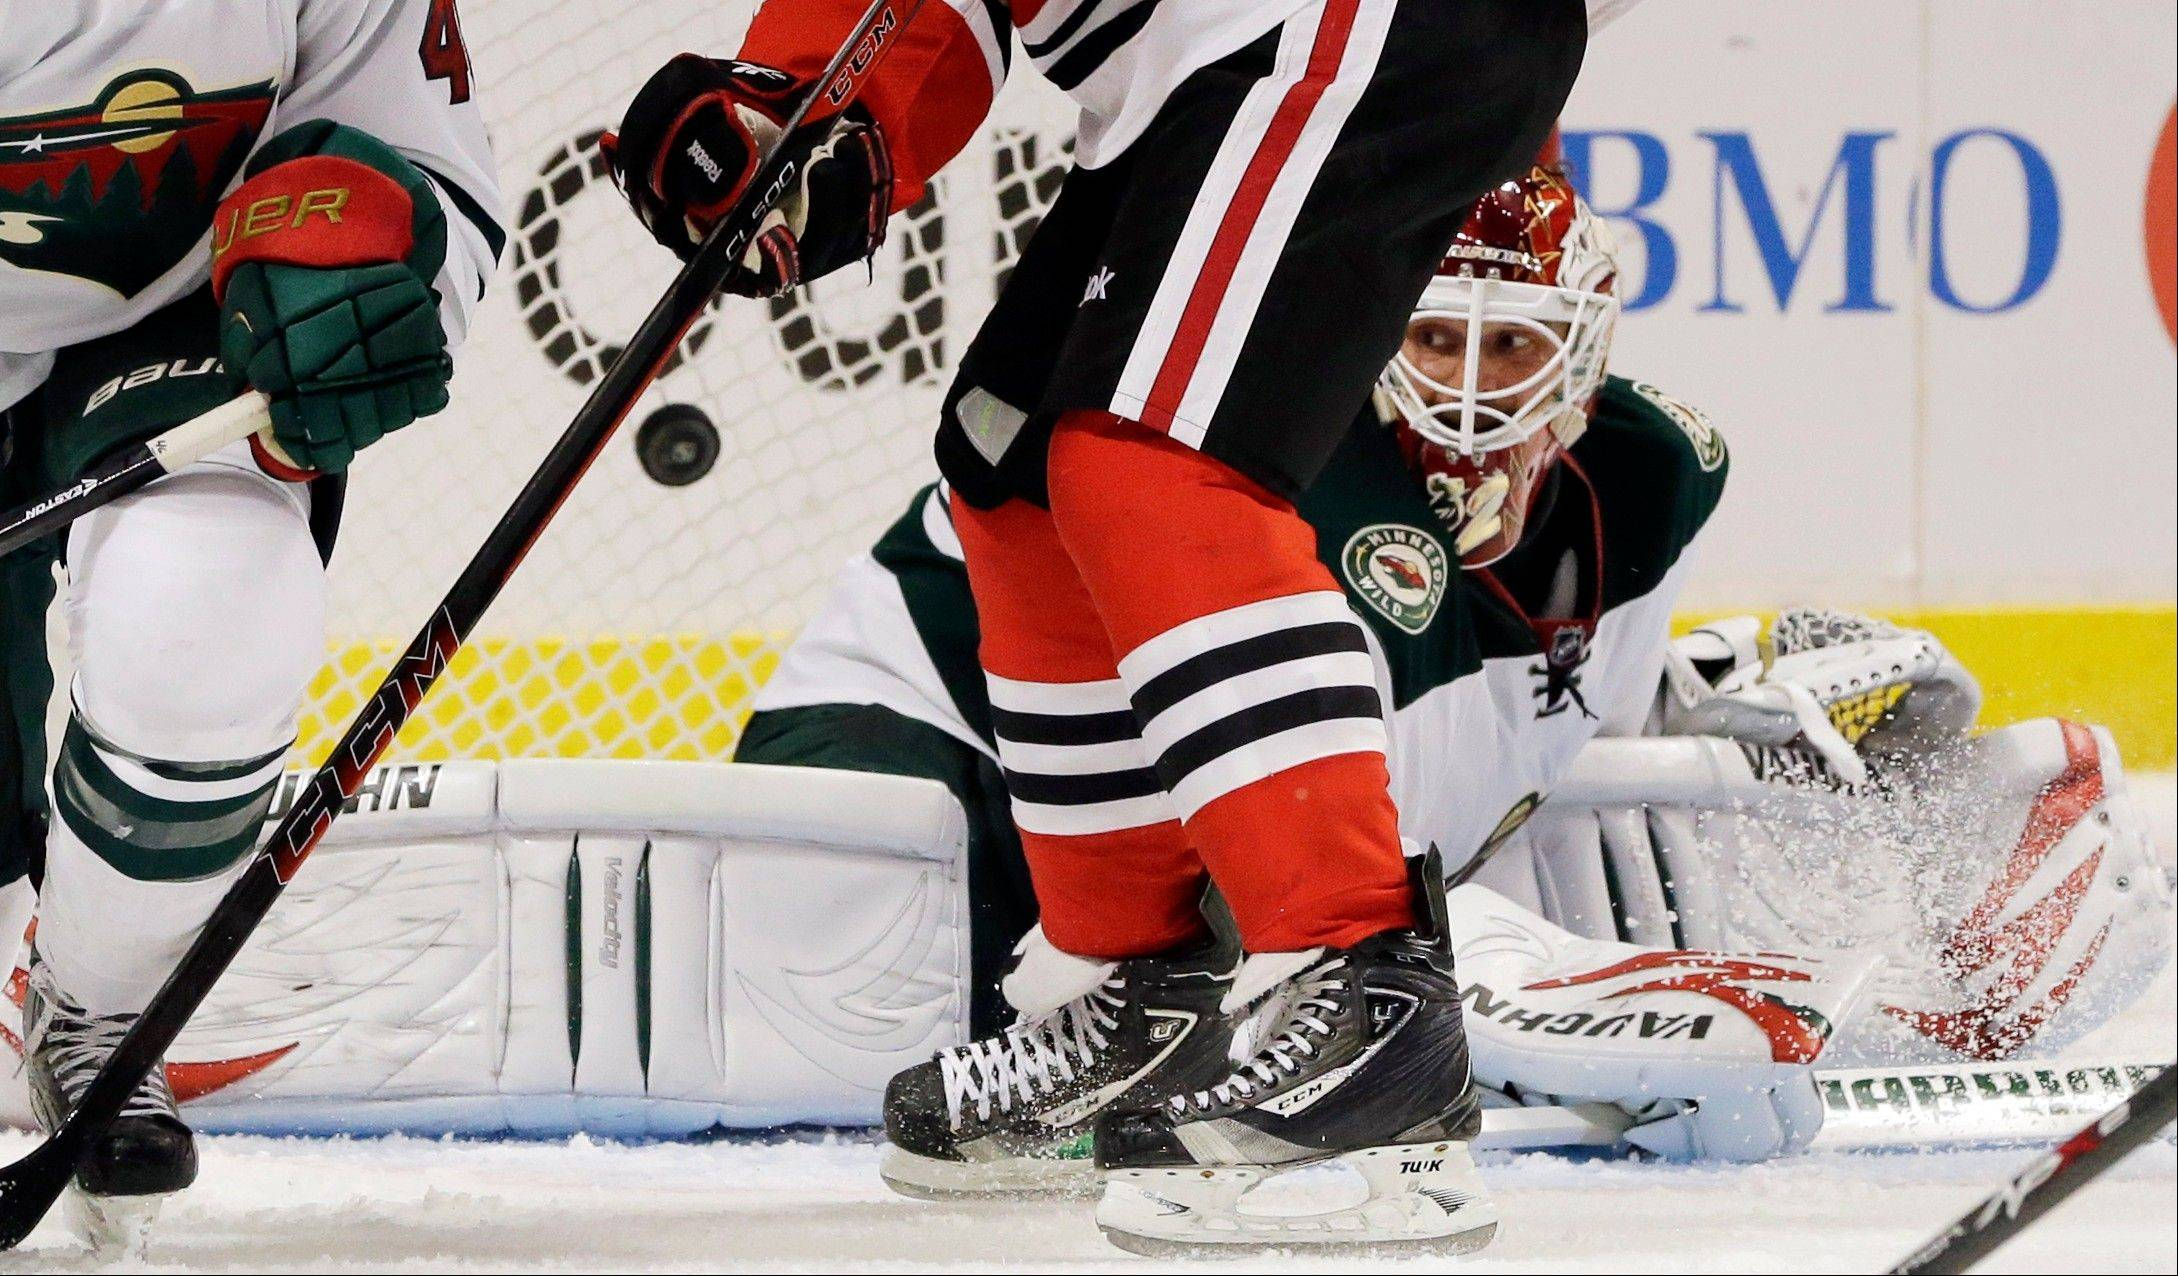 Minnesota Wild goalie Niklas Backstrom (32) can't save a goal by Chicago Blackhawks' Bryan Bickell (29) during the second period.